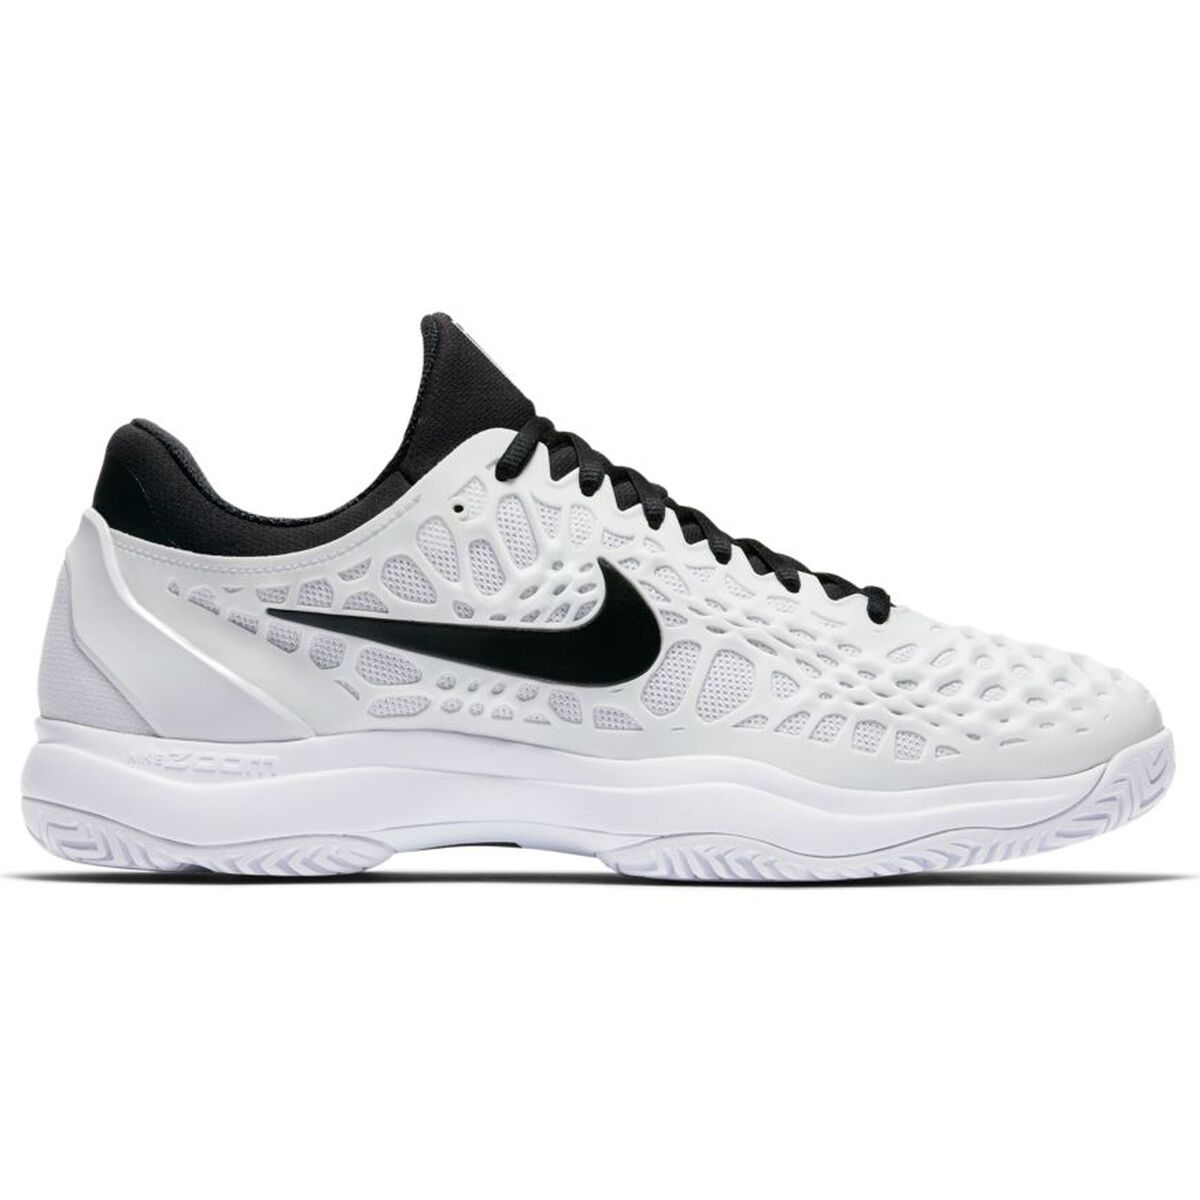 newest 07ada 2675b Images. Nike Zoom Cage 3 ...